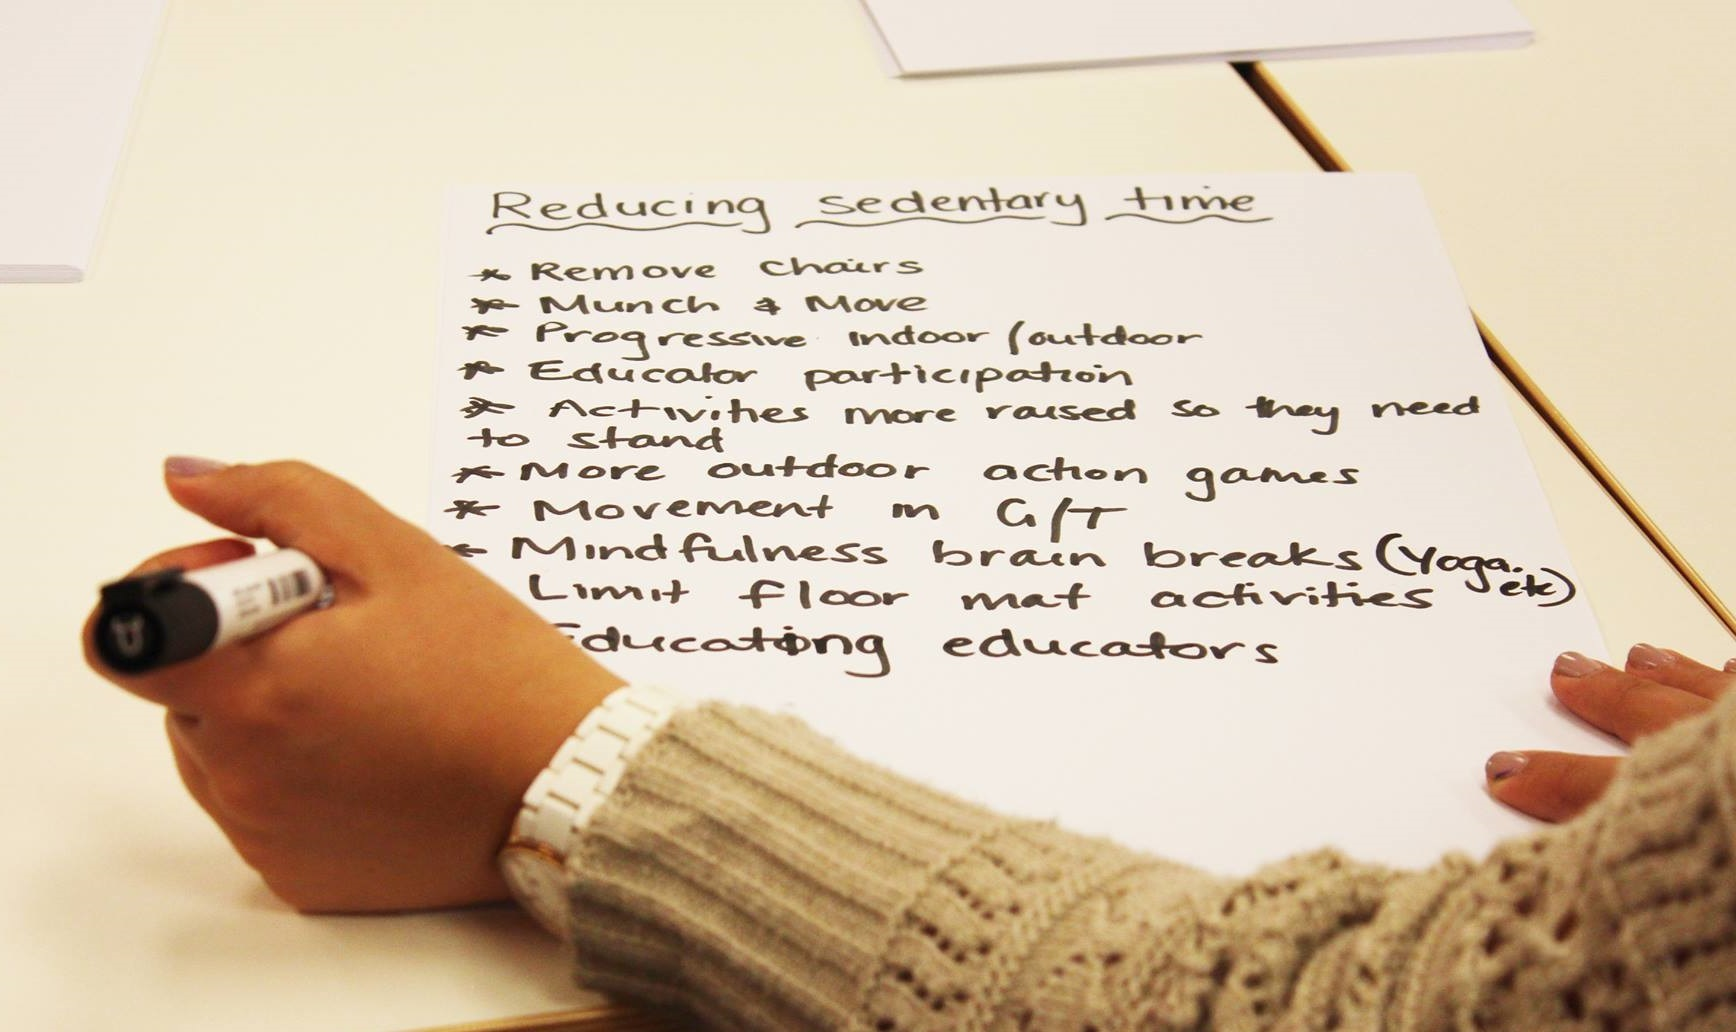 photograph of a person writing a list of strategies for reducing sedentary time and creating active spaces for children (e.g. remove chairs, munch and move, education, yoga etc.)